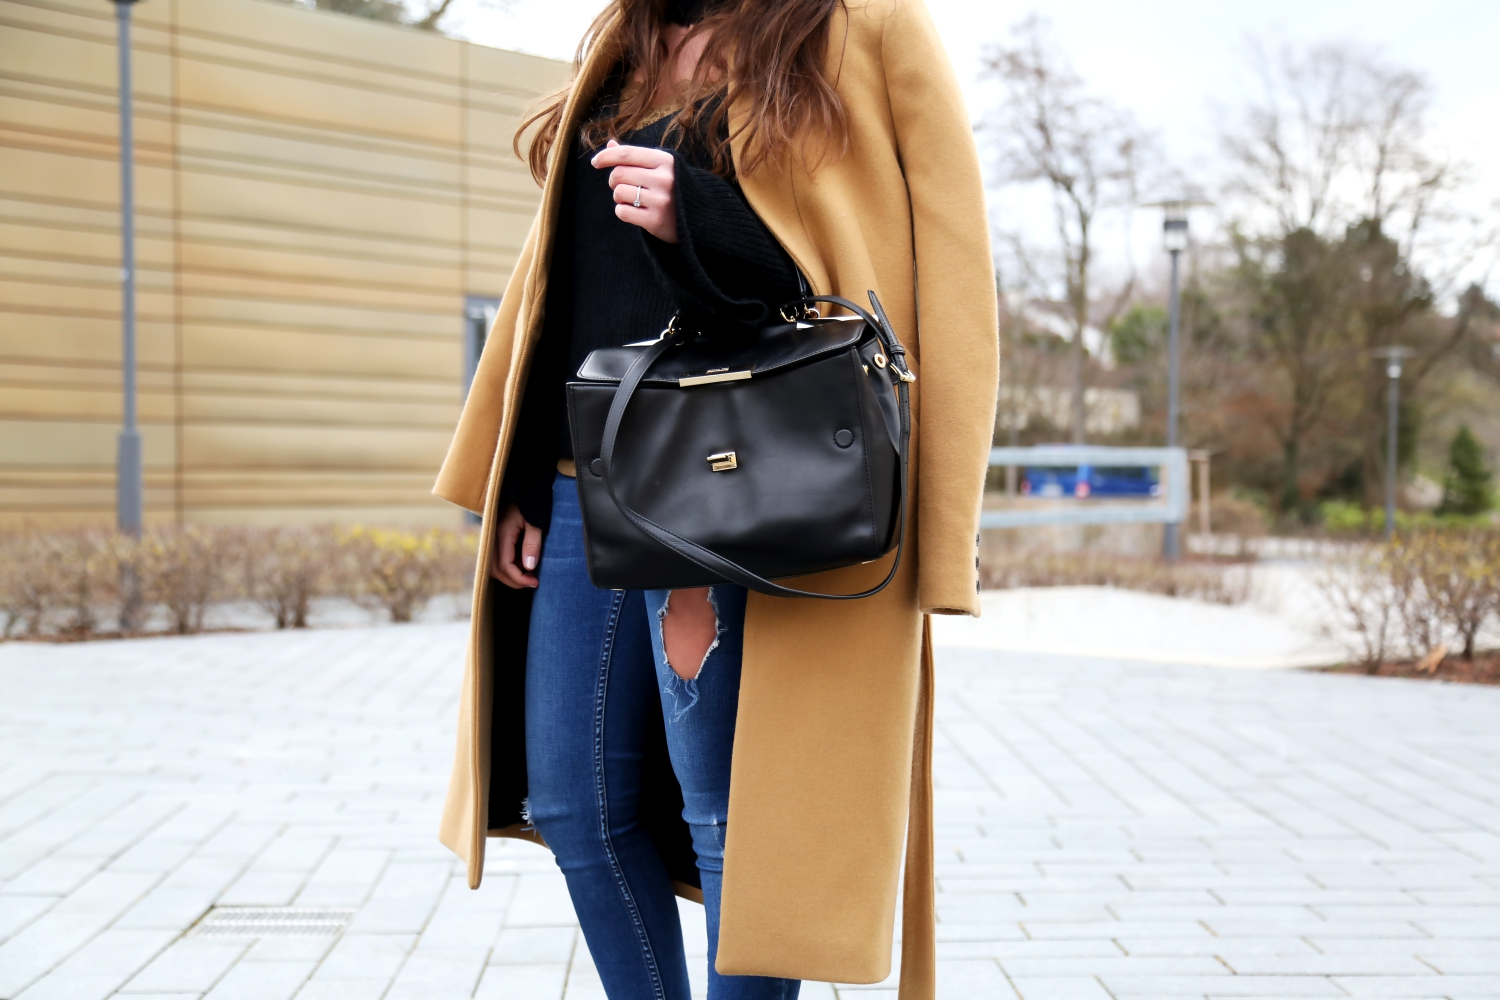 outfit-details-fashionblogger-iroparis-coat-camel-ripped-jeans-lace-top-michaelkors-bag